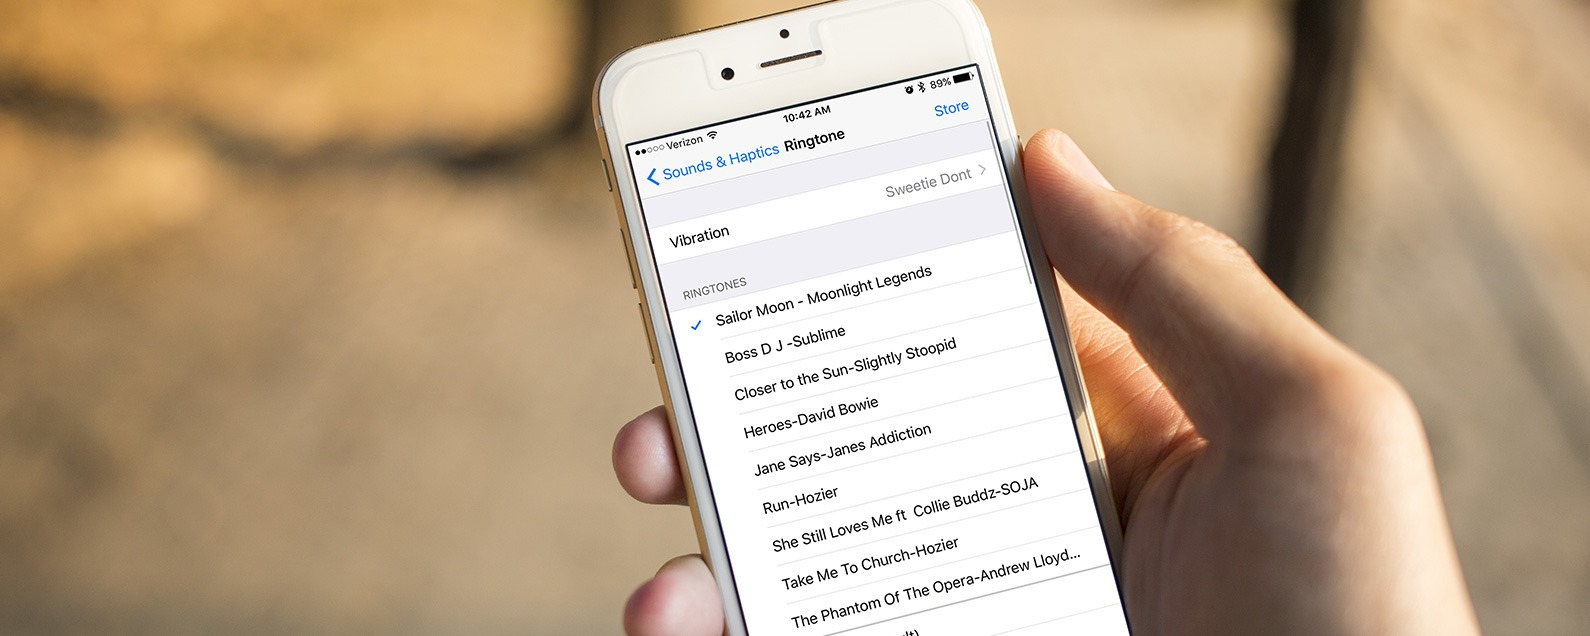 How to Retrieve Deleted Text Messages from an iPhone